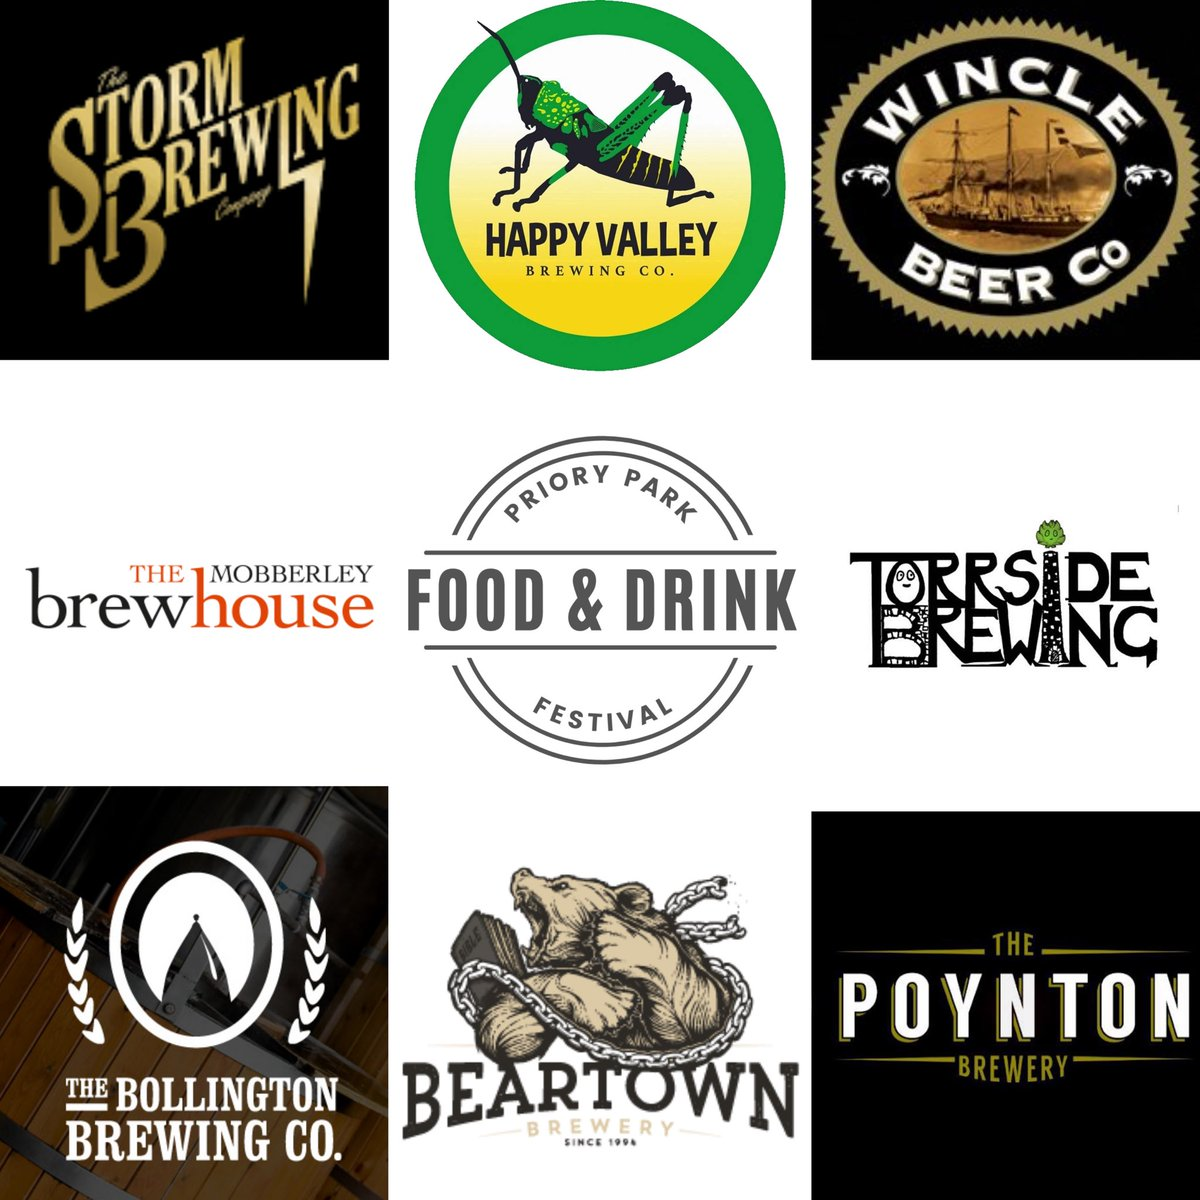 test Twitter Media - 🍺 Confirmed Breweries for the Priory Park Food & Drink Festival!  Friday 17th 6pm until late Saturday 18th 11am until late Support this great event and book your tickets 🎟  https://t.co/LBaZjDT40t More updates to come on the beers, Gins, wines, food & Bands, watch this space! https://t.co/YaTTXfMi22